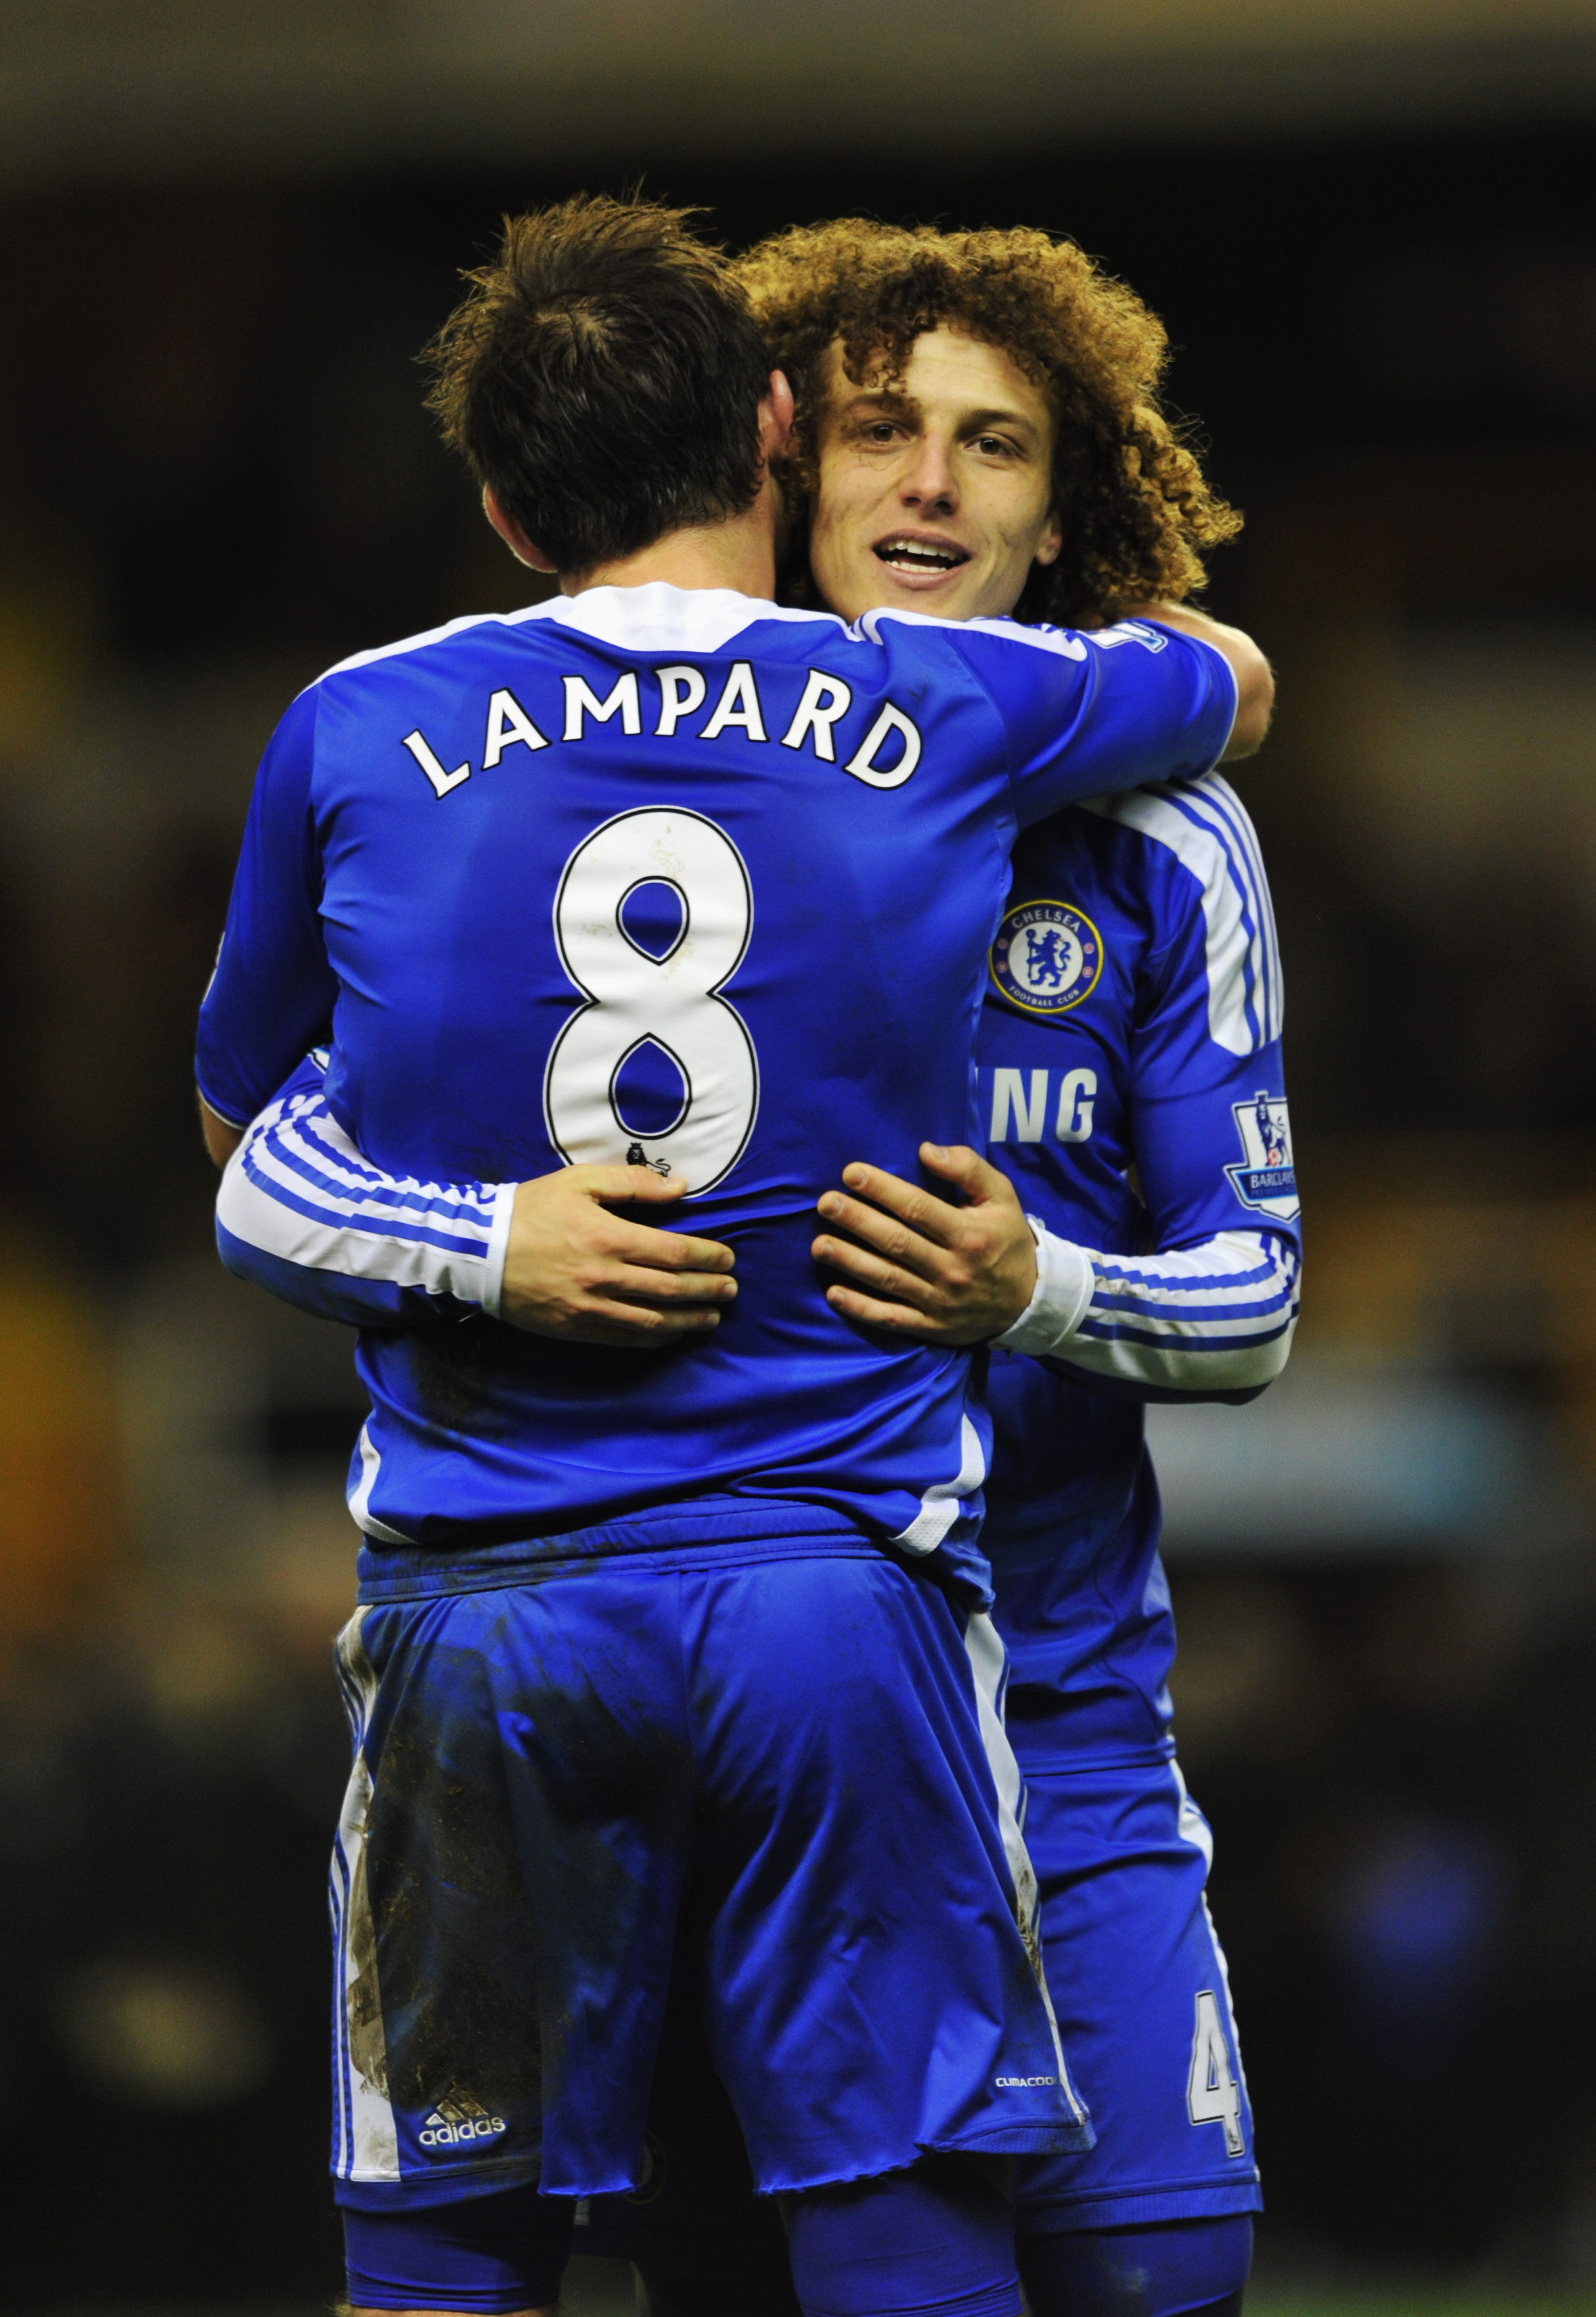 Lampard insists David Luiz move was a football decision, not a (player) power play